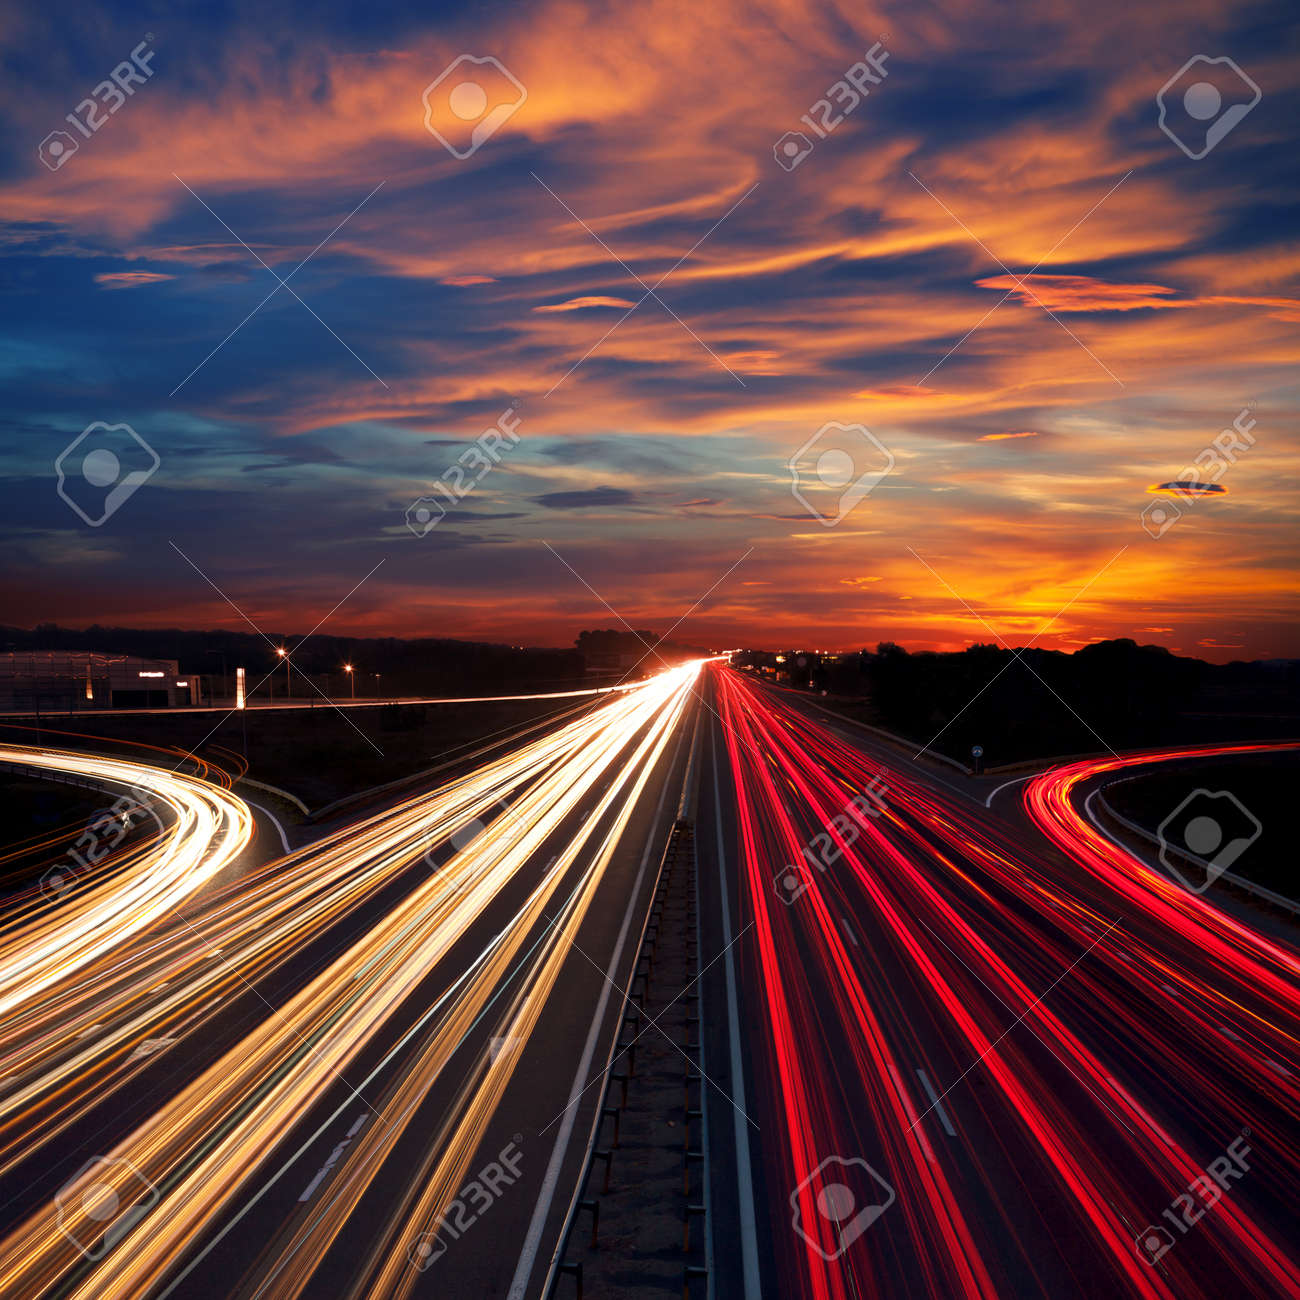 Speed Traffic at Dramatic Sundown Time - light trails on motorway highway at night, long exposure abstract urban background - 32283582